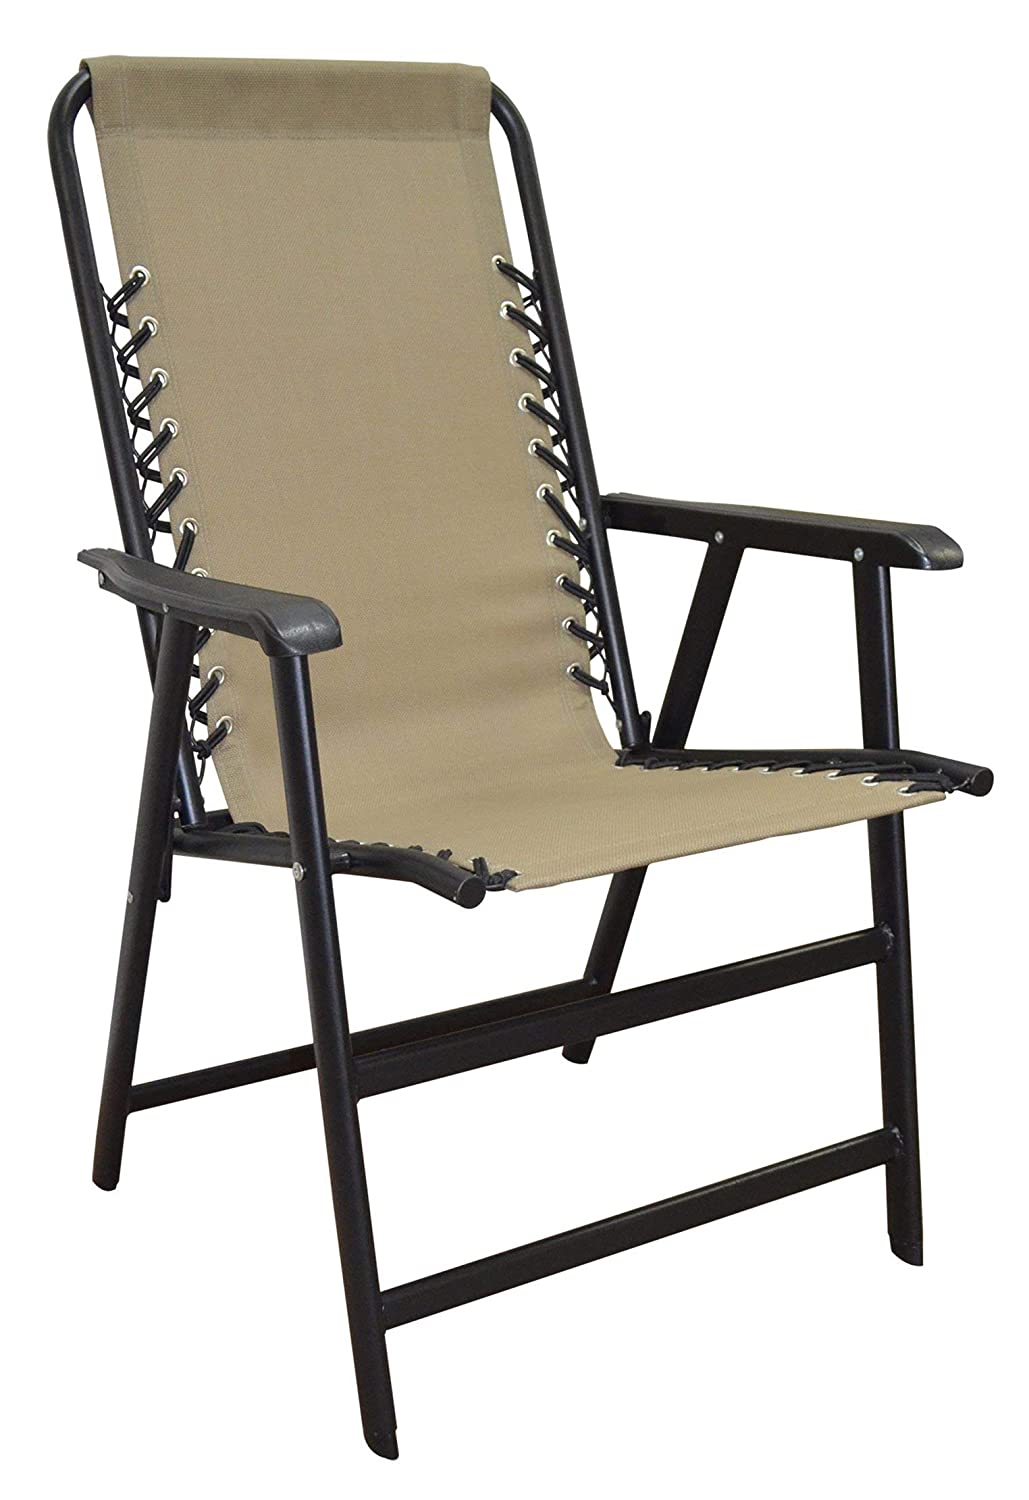 Caravan Sports Suspension Folding Chair, Beige Renewed